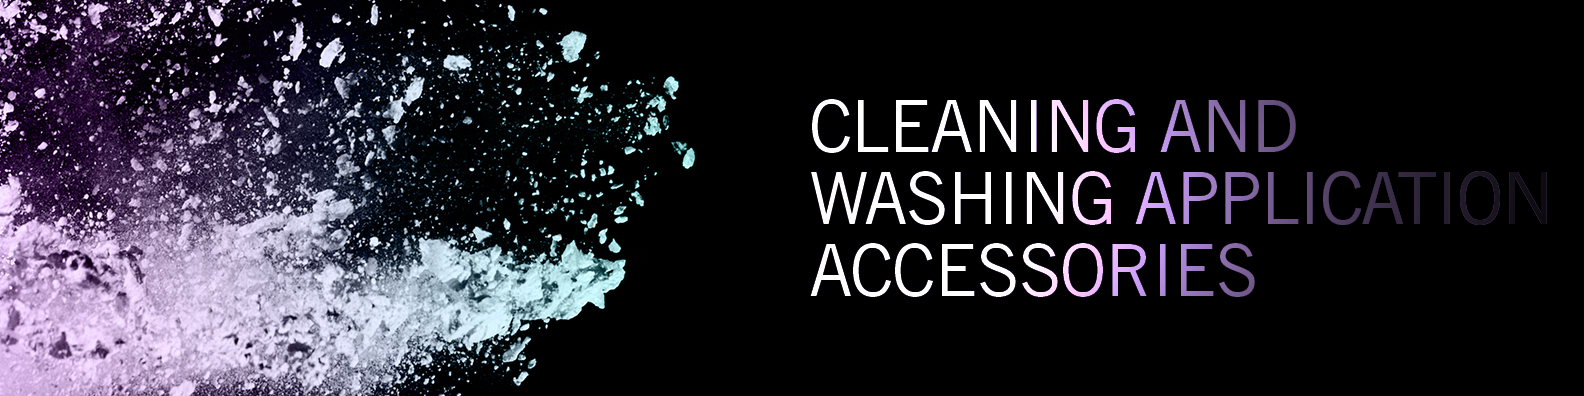 Cleaning and Washing Application Accessories